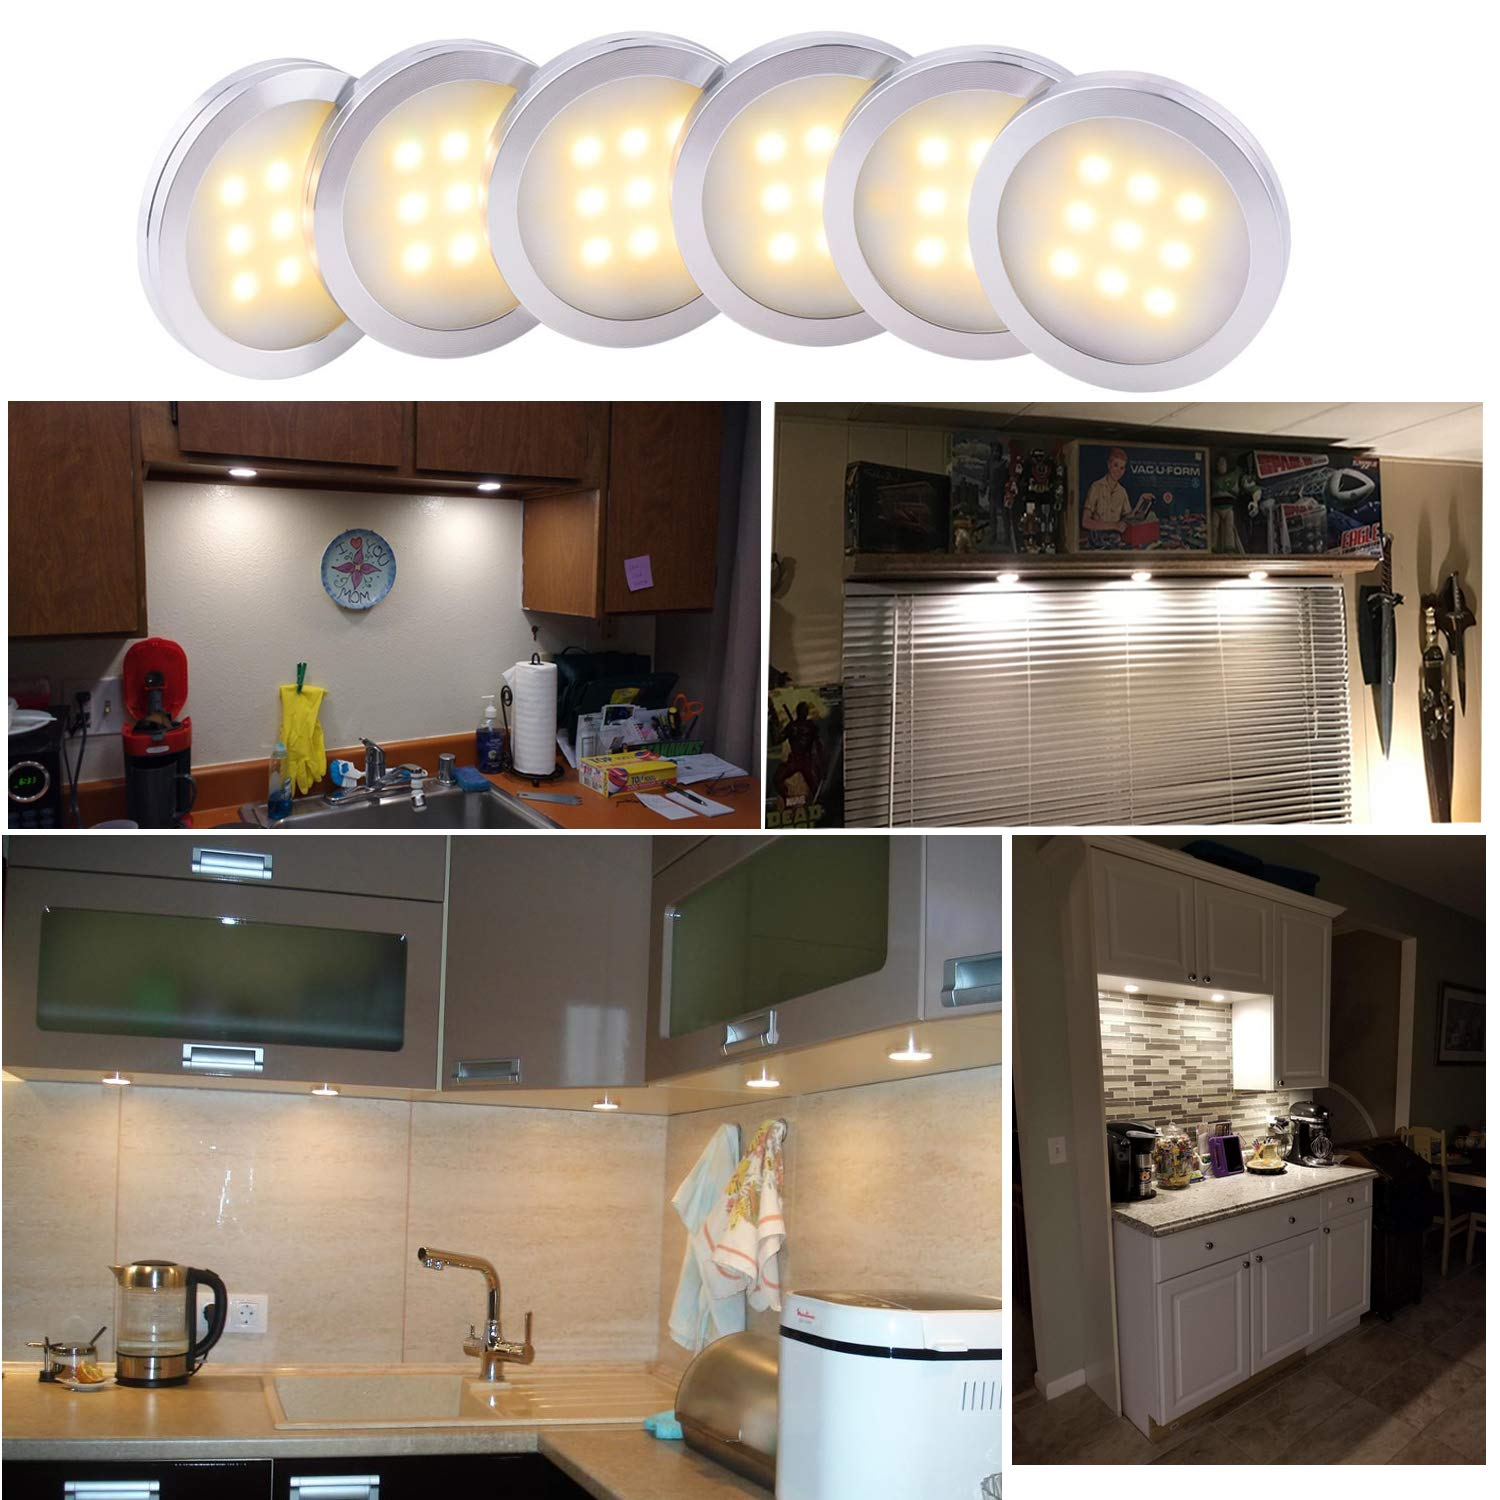 AIBOO Dimmable LED Under Cabinet Lighting, Counter Showcase Kitchen Lighting Fixtures with 12V Plug in adapter and Dimmable Wireless Remote Control, 6 Ultra Slim Puck Lights Kit (Warm White) by AIBOO (Image #6)